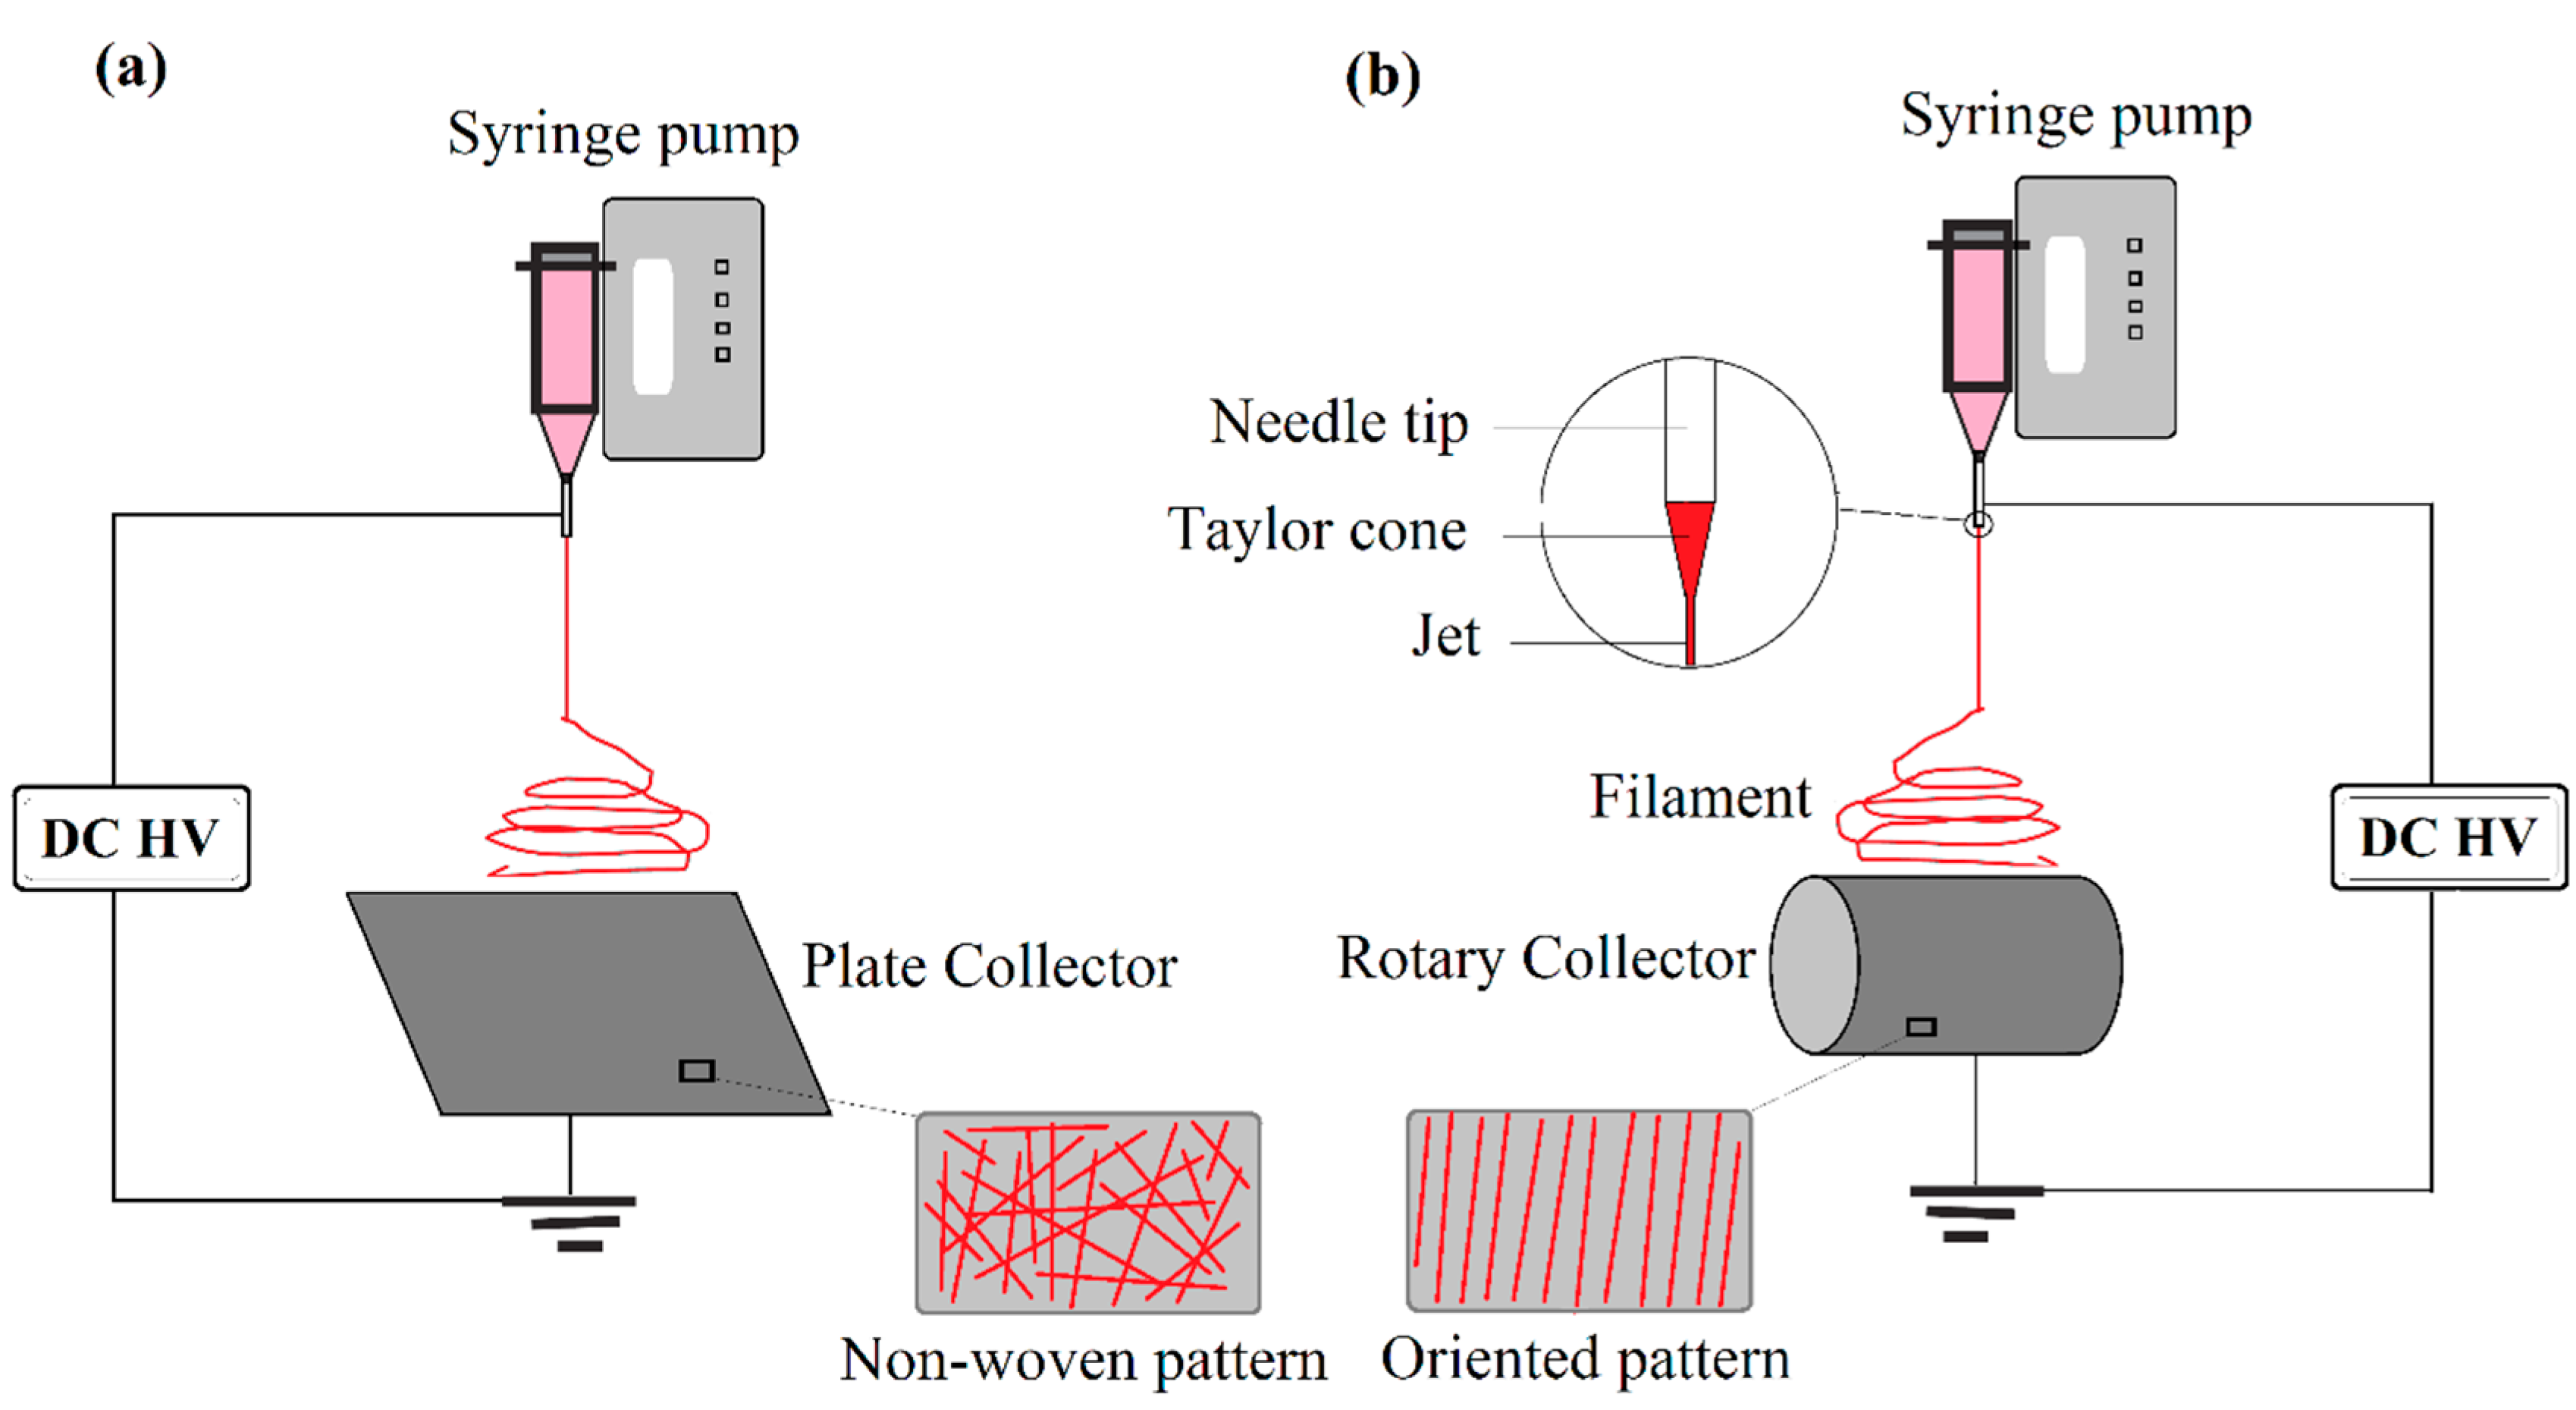 Materials Free Full Text Electrospun Ceramic Nanofiber Mats 3 Phase Rotary Switch Kan Nie Wiring Diagram 10 01238 G001 Figure 1 Schematic Electrospinning Methods